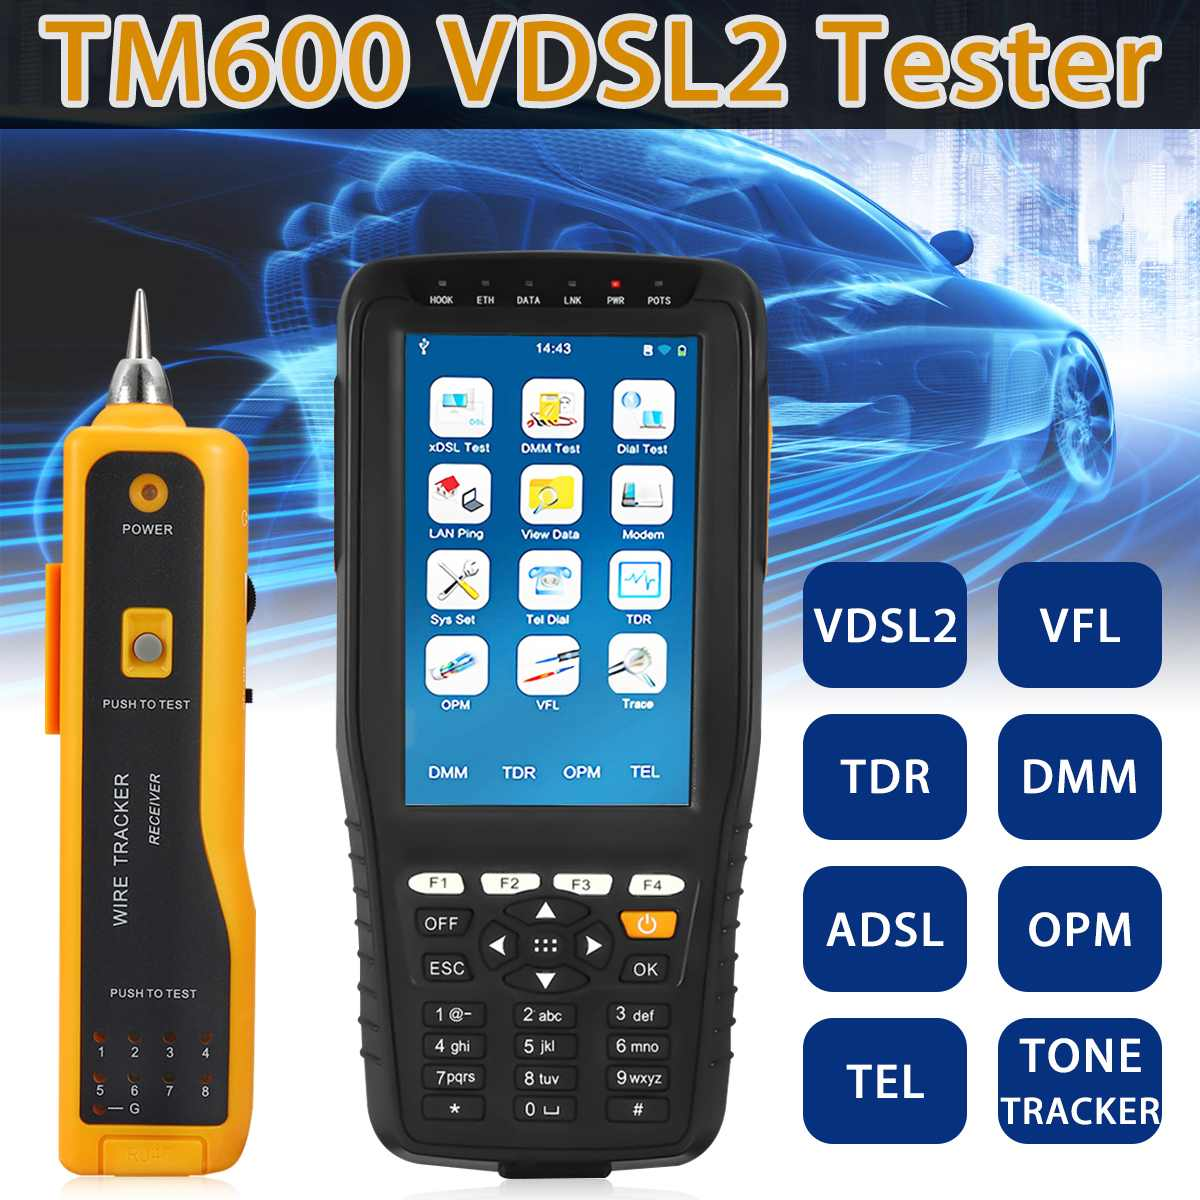 TM 600 VDSL VDSL2 Tester ADSL WAN LAN Tester xDSL Line Test Equipment with All Functions DSL Physical Layer Test